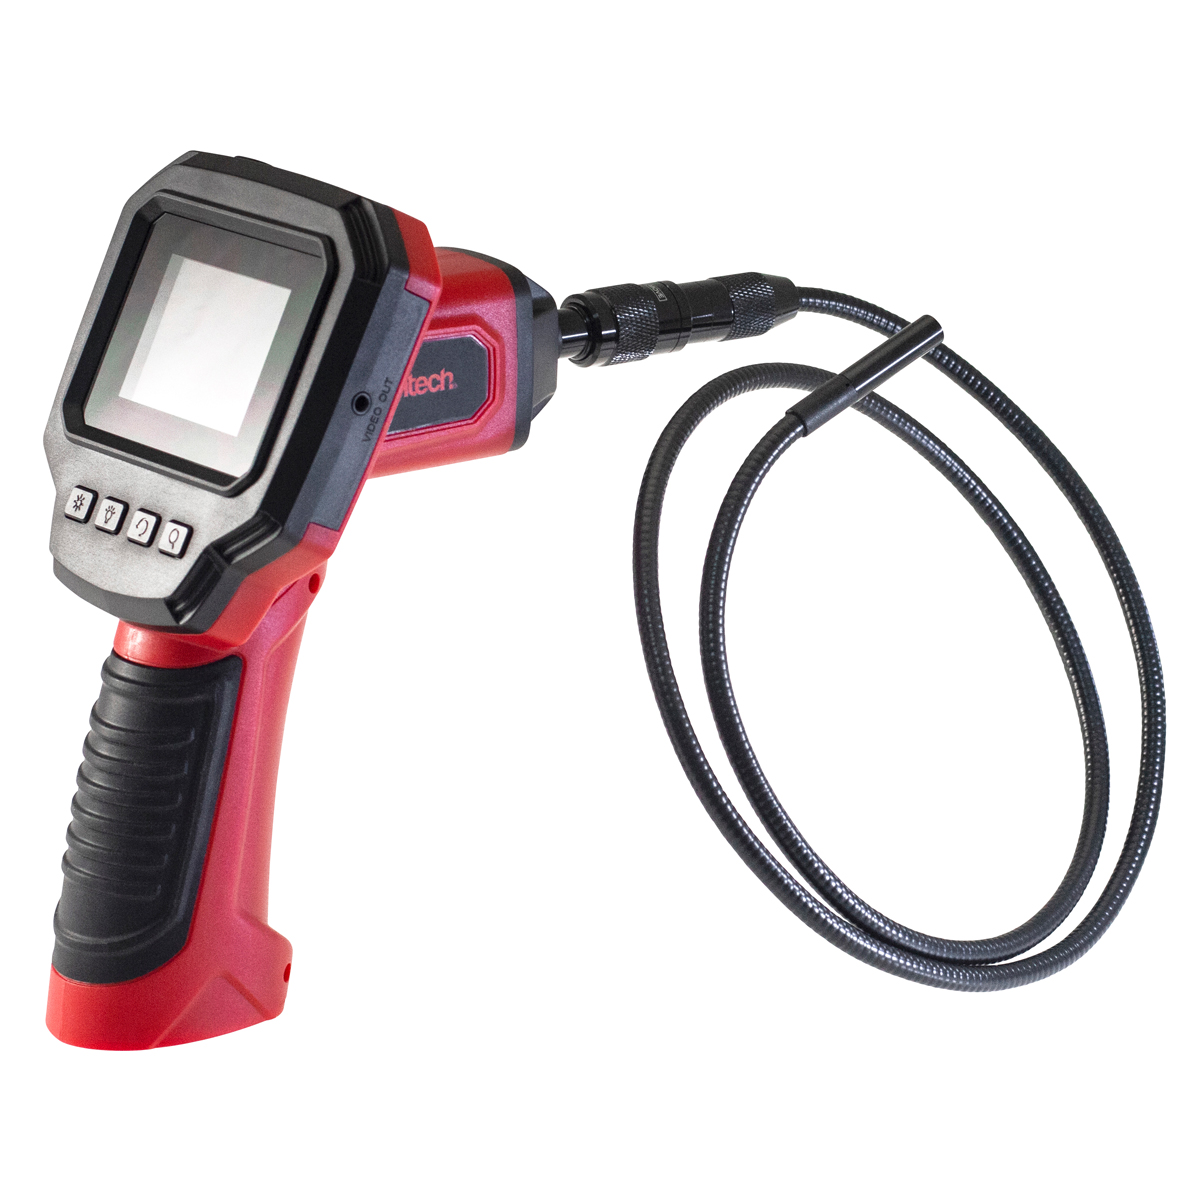 Lot 50039 - V Brand New 2.4 Inch Colour LCD Inspection Camera - Adjustable Backlit LED Screen